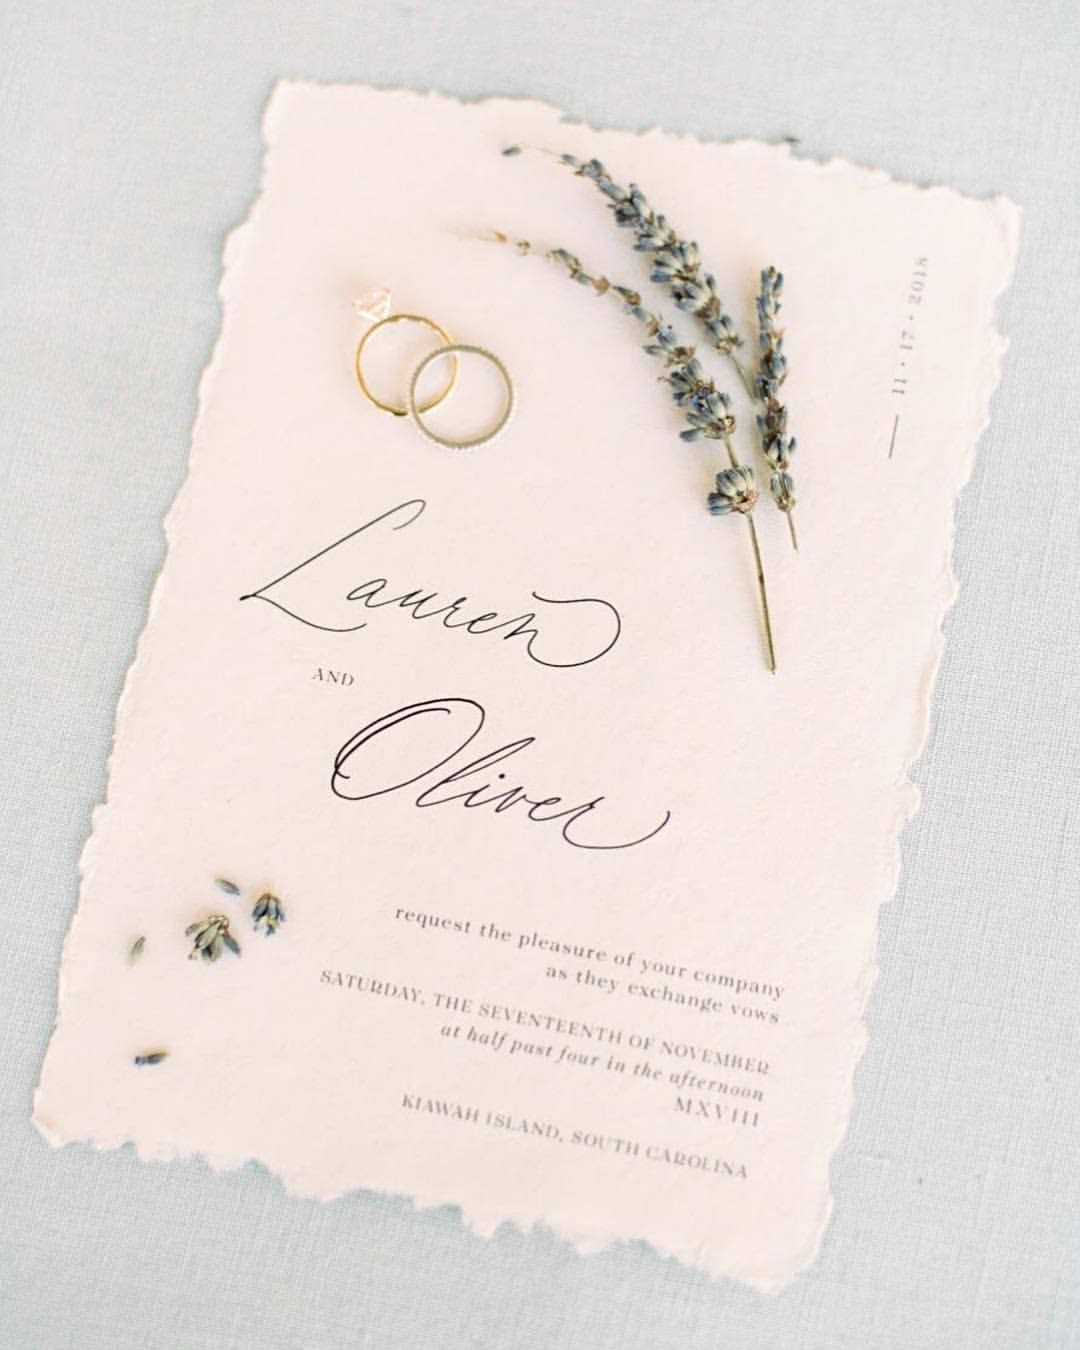 Minimalist Layout Invitation Card With Type And Calligraphy